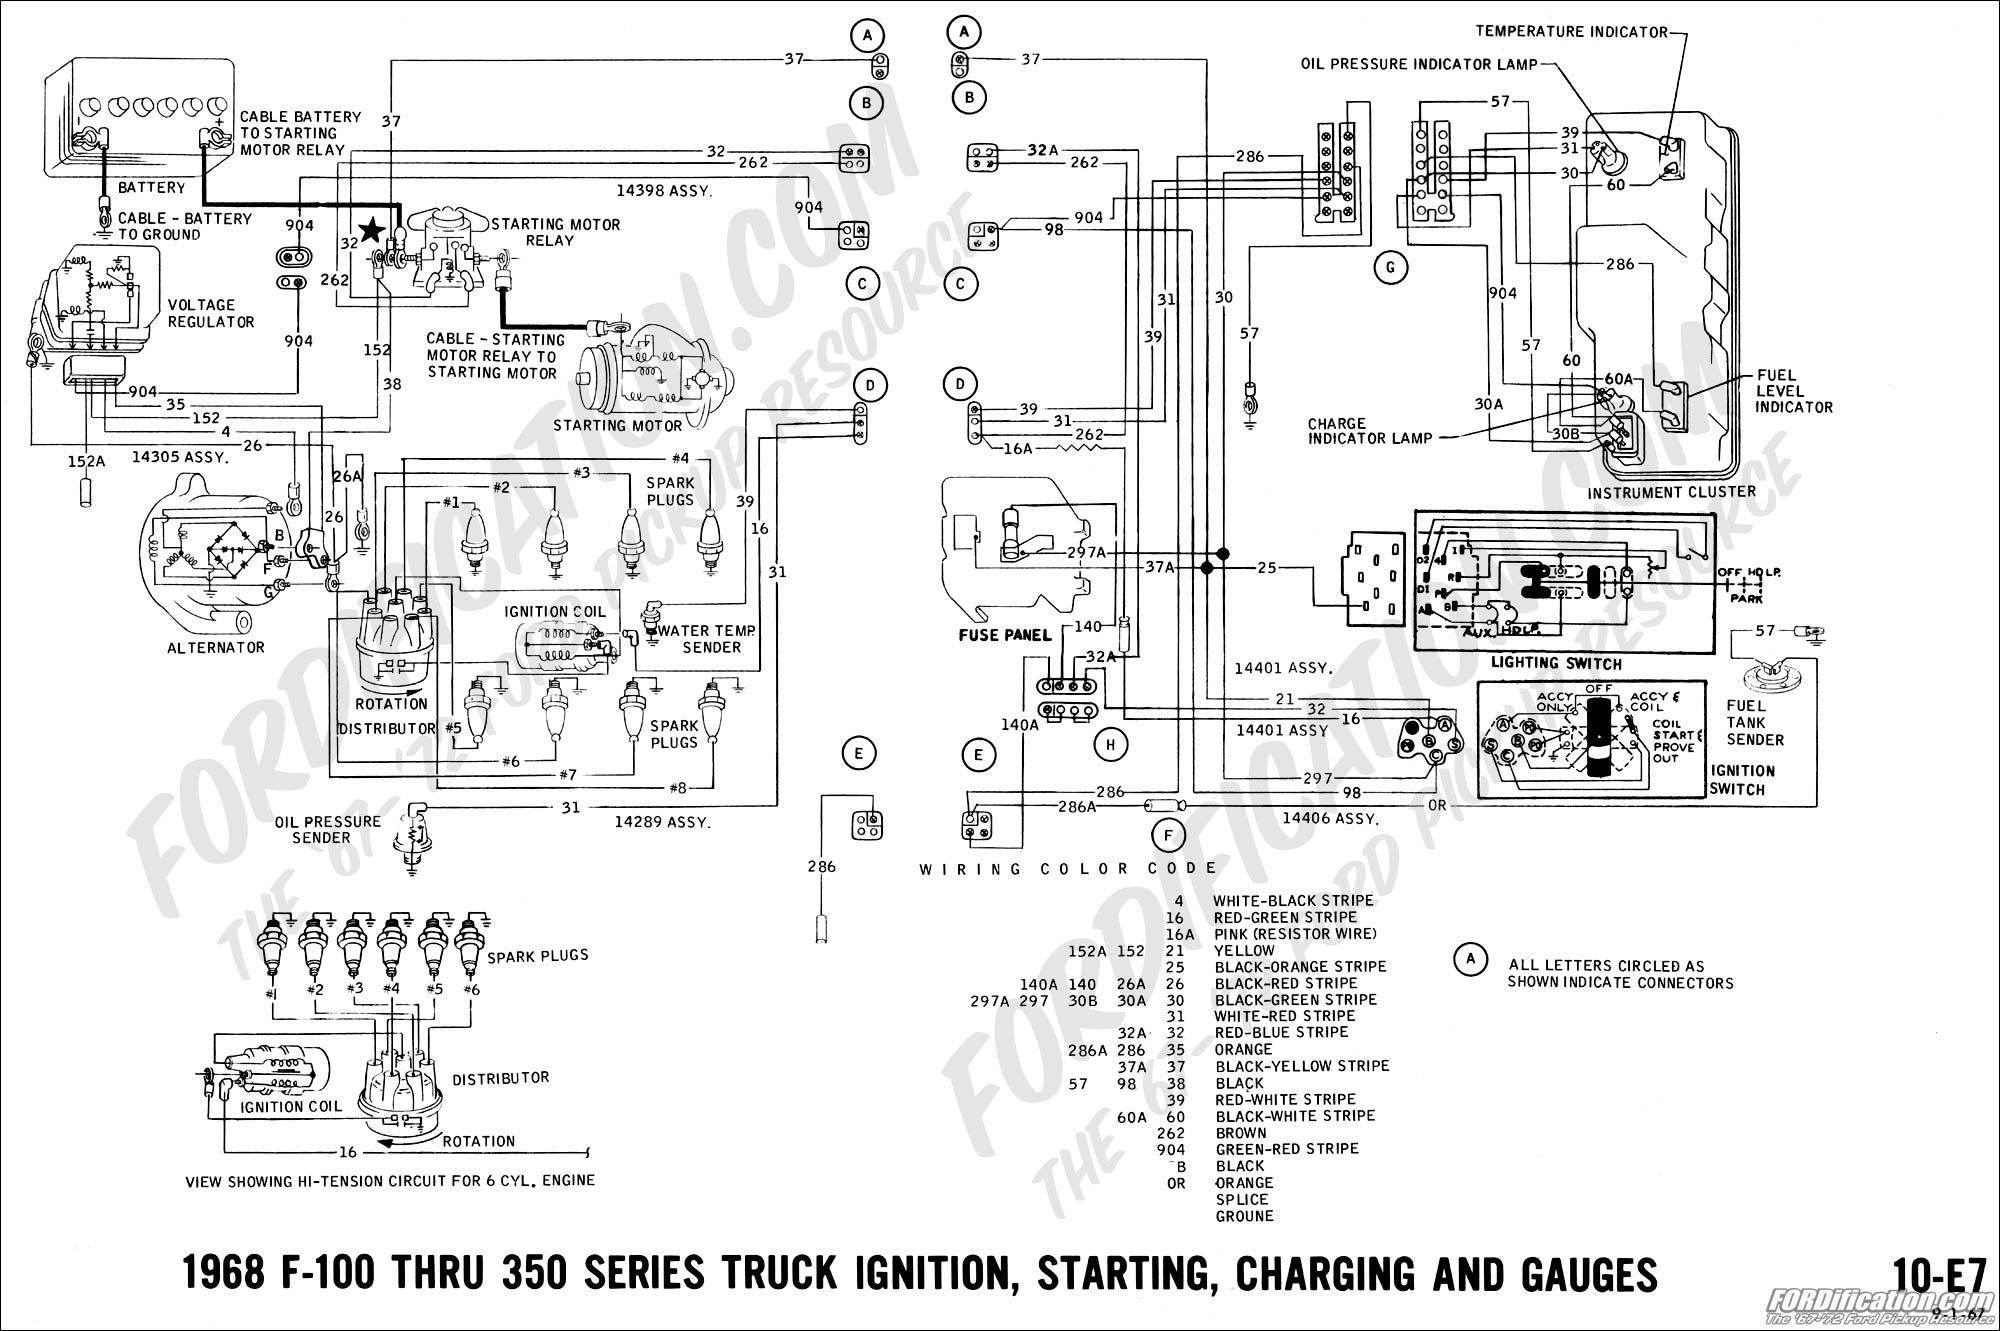 68 09 ford truck technical drawings and schematics section h wiring 1999 F150 Radio Wiring Diagram at webbmarketing.co